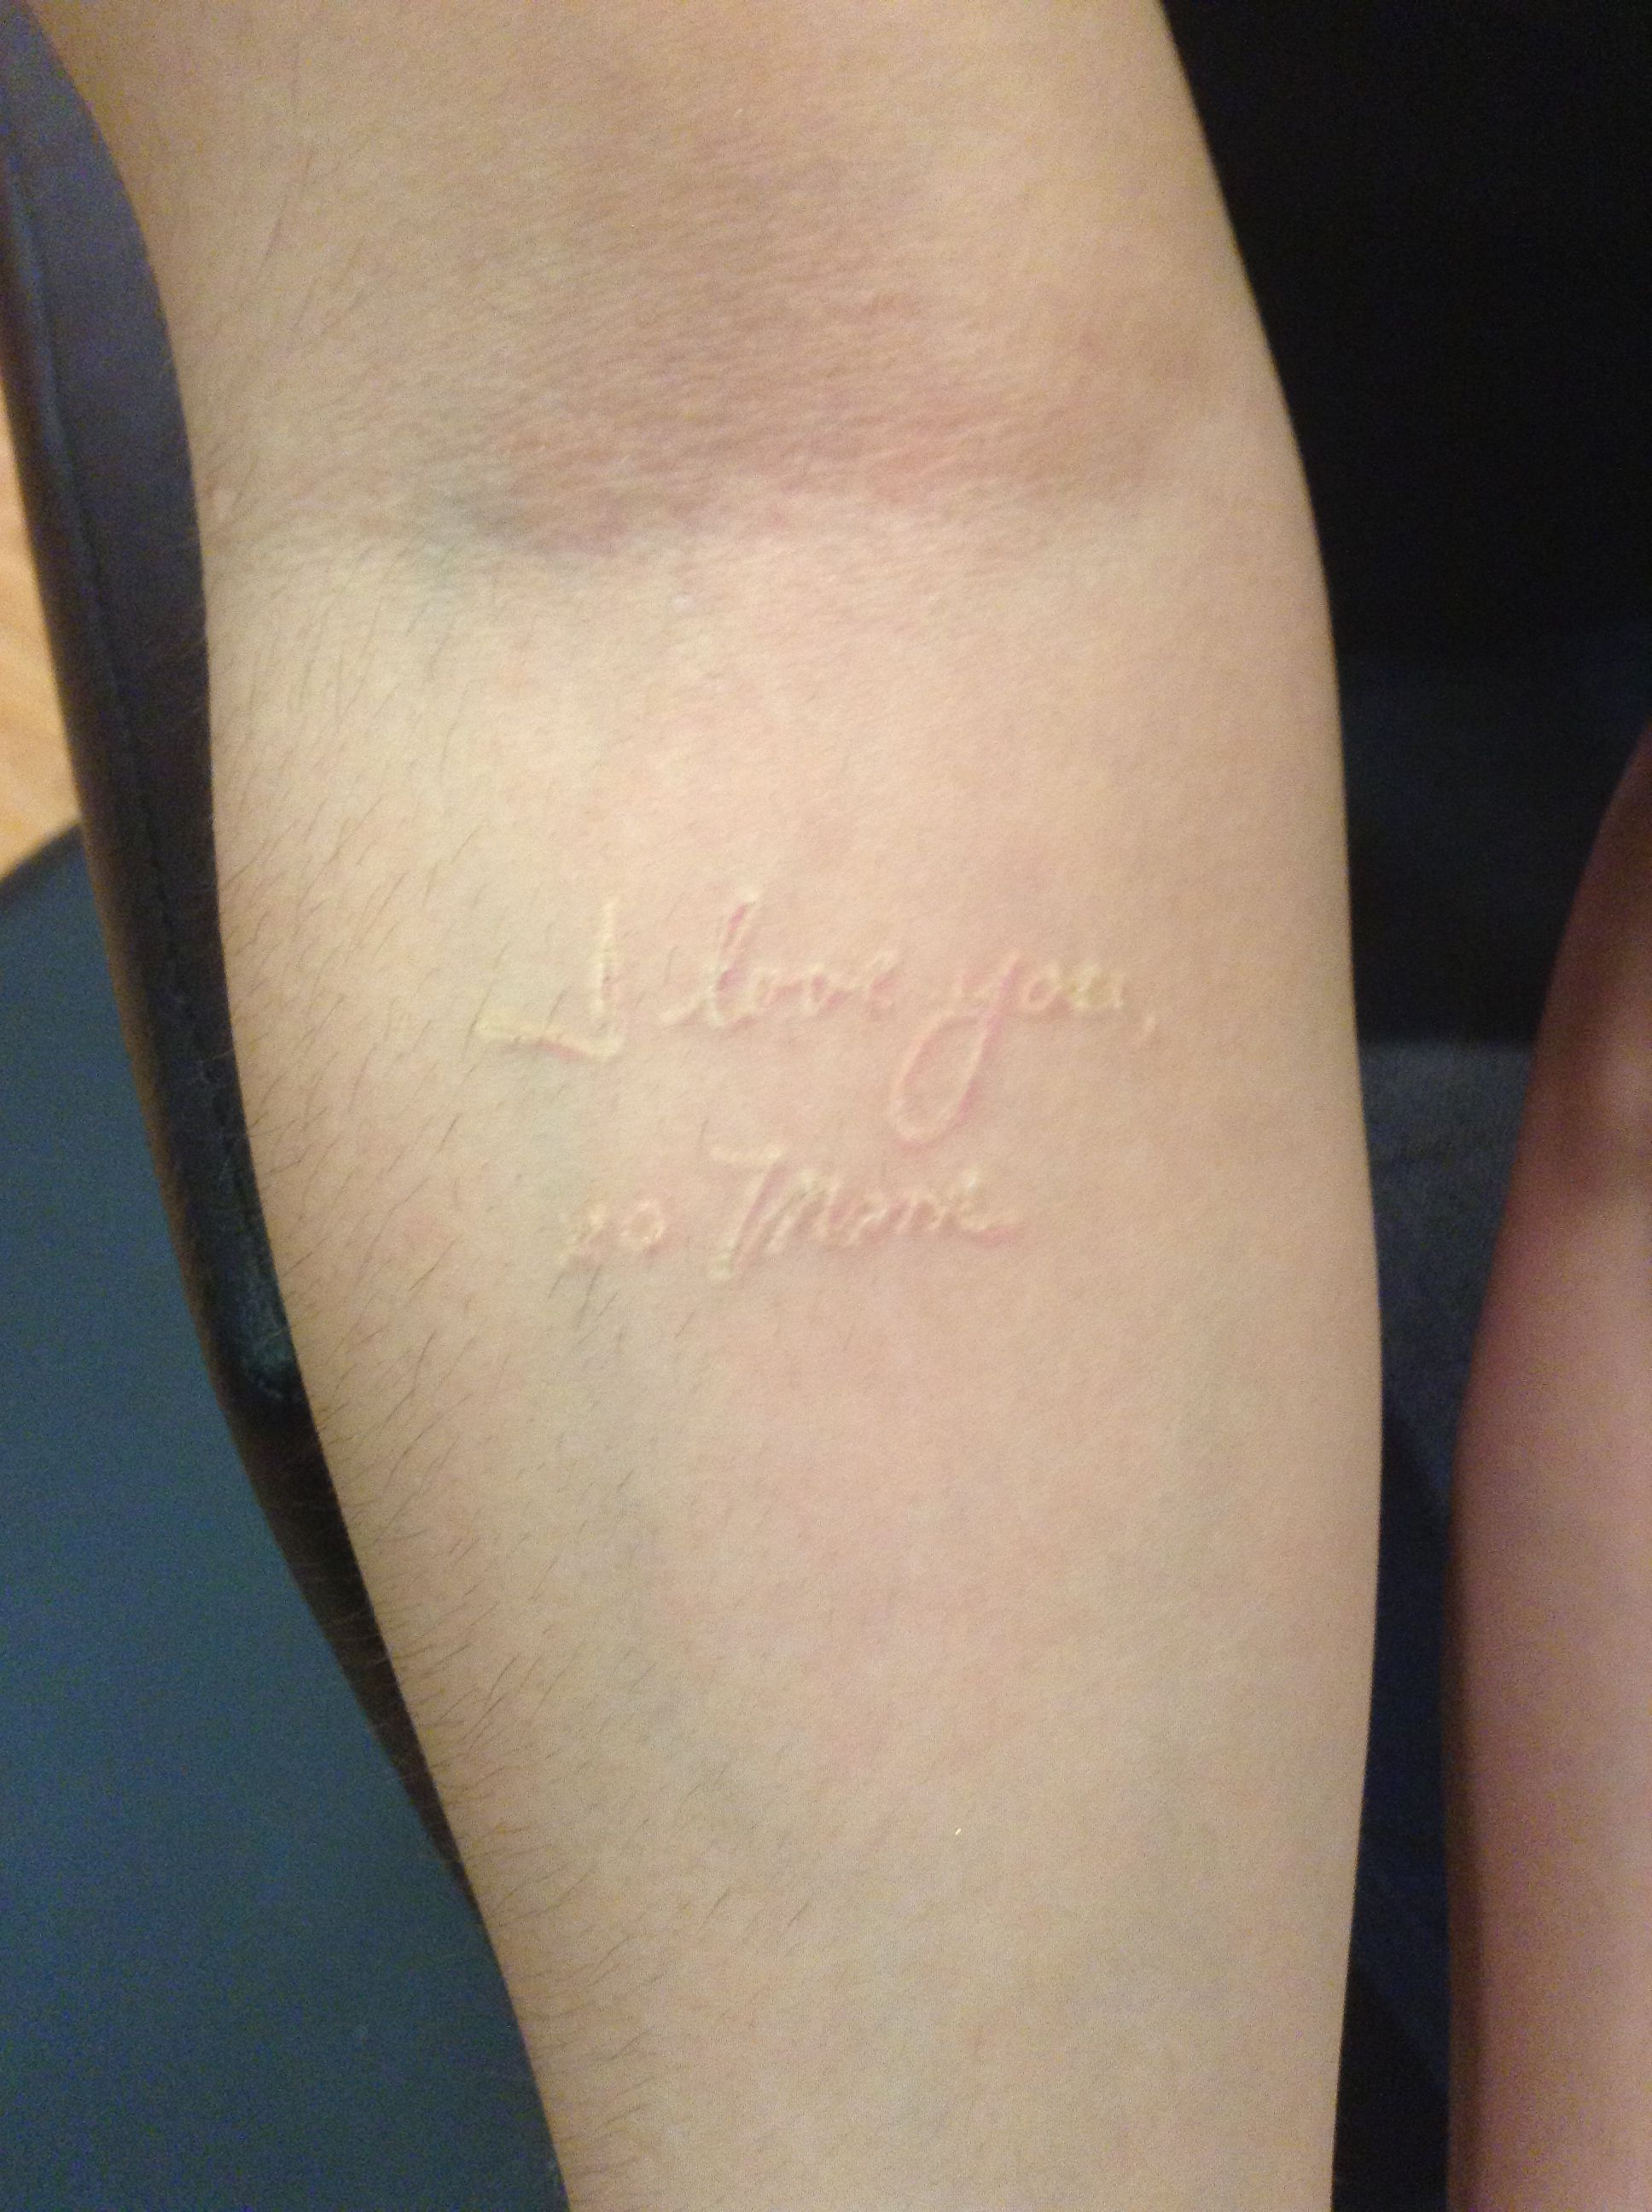 When Is Tattoo Healed: This Is My Tattoo, Totally Healed. He Did White Ink With A